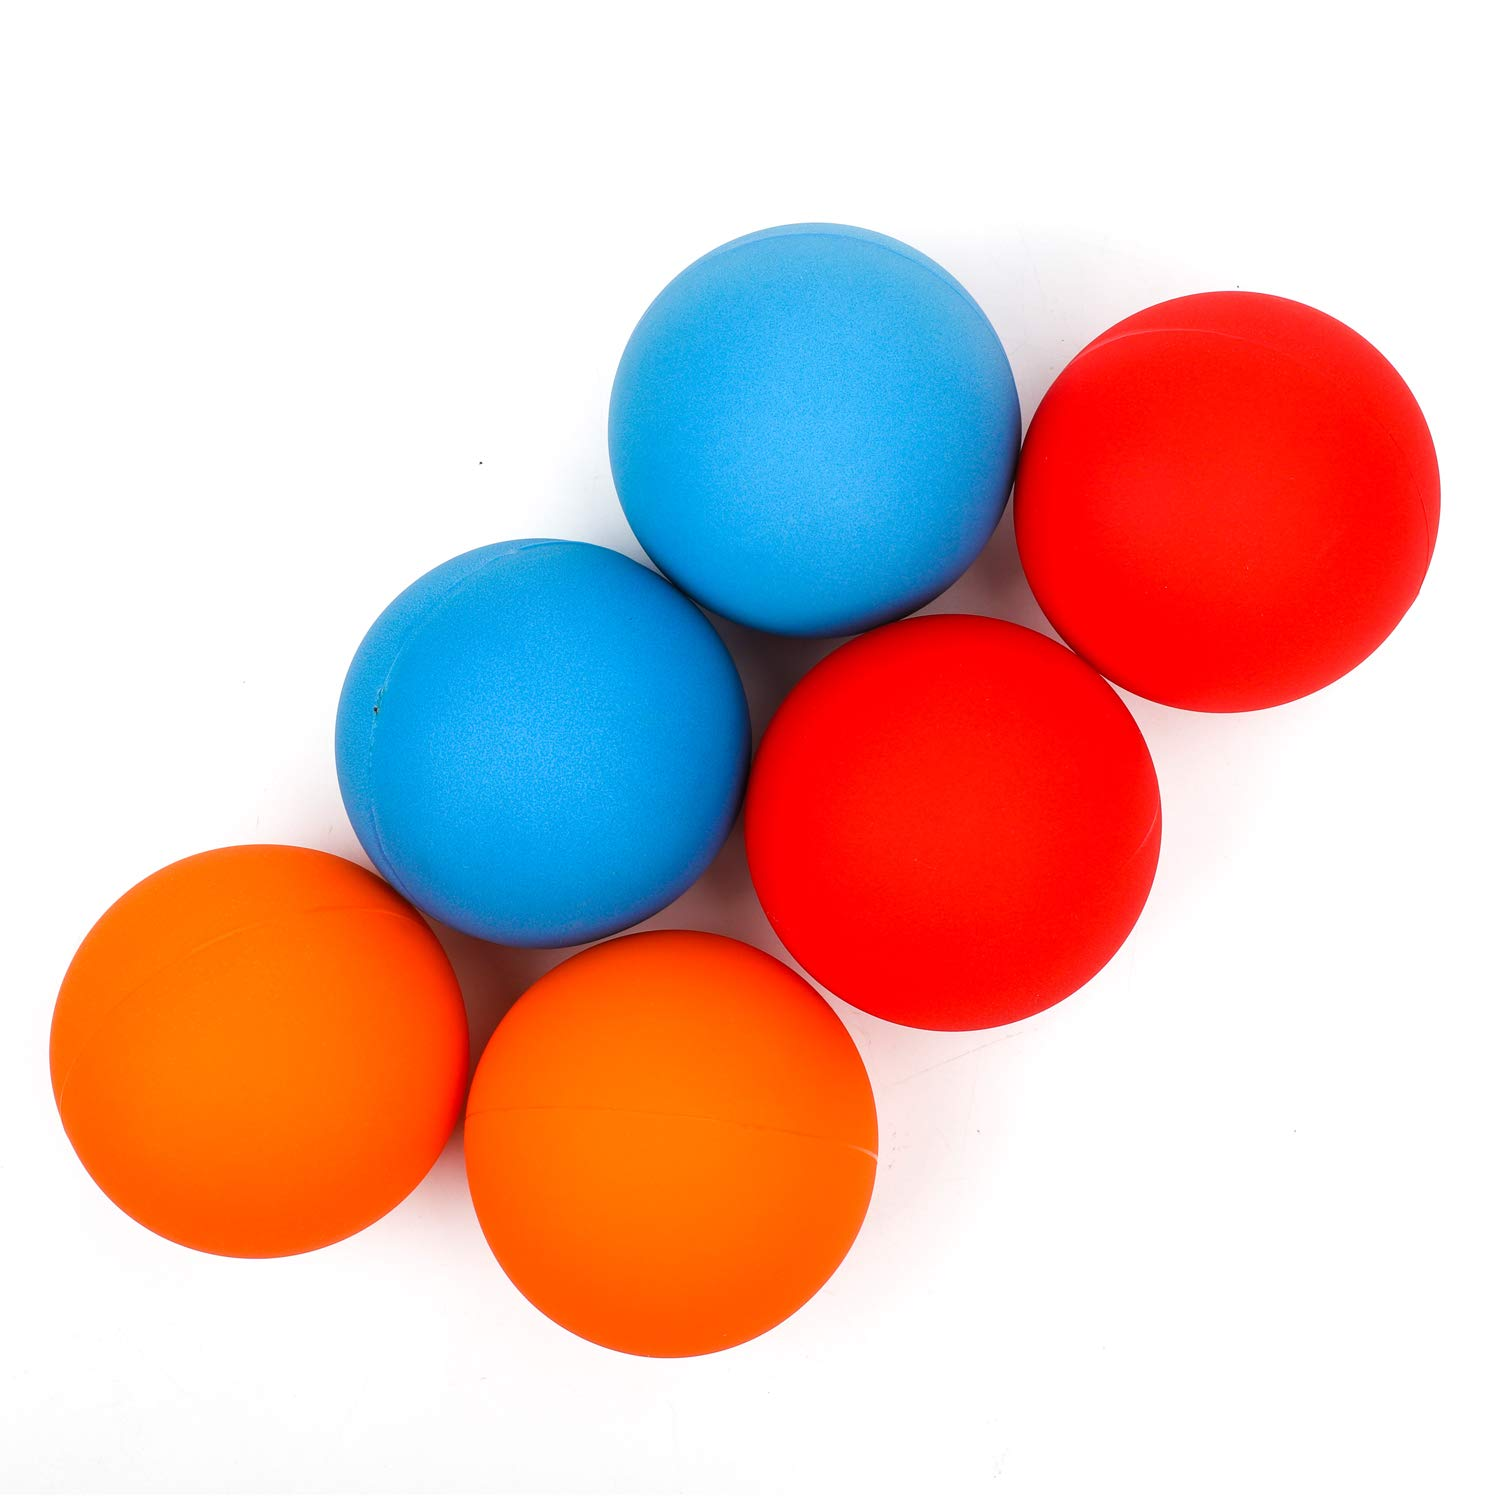 YuXing Professional Juggling Ball Set, Large Size=3.5'', for Beginners&Professionals, for Adults, Set of 6 (Red Blue Orange)